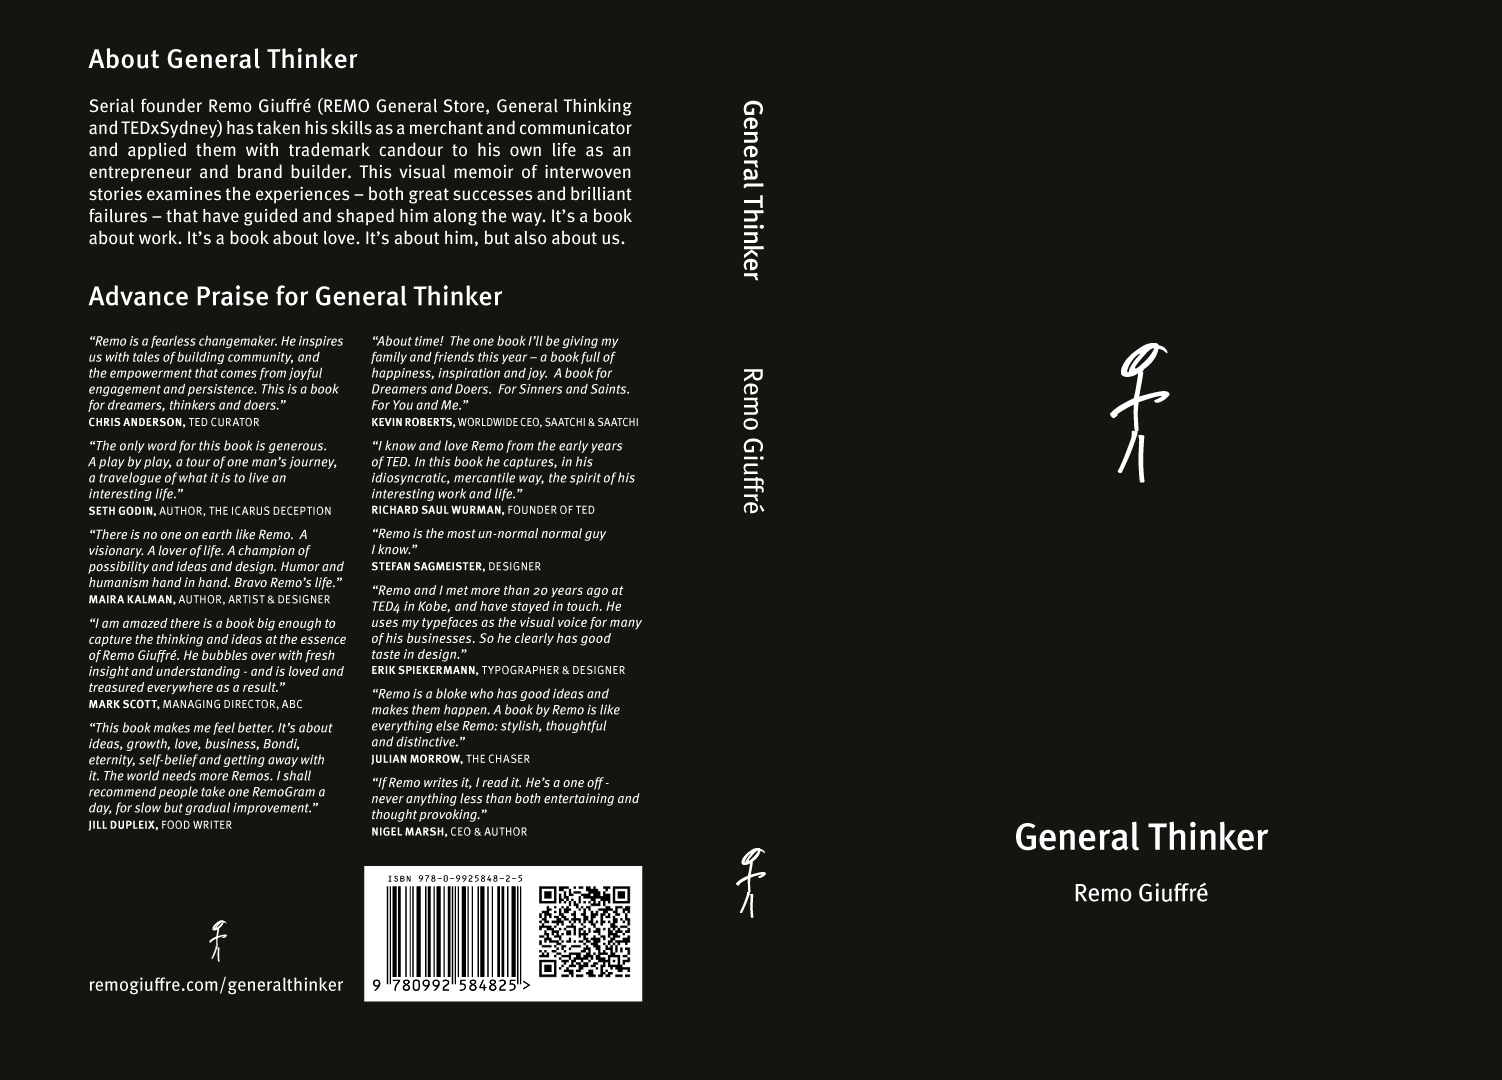 GeneralThinker_Book_00_Covers.jpg